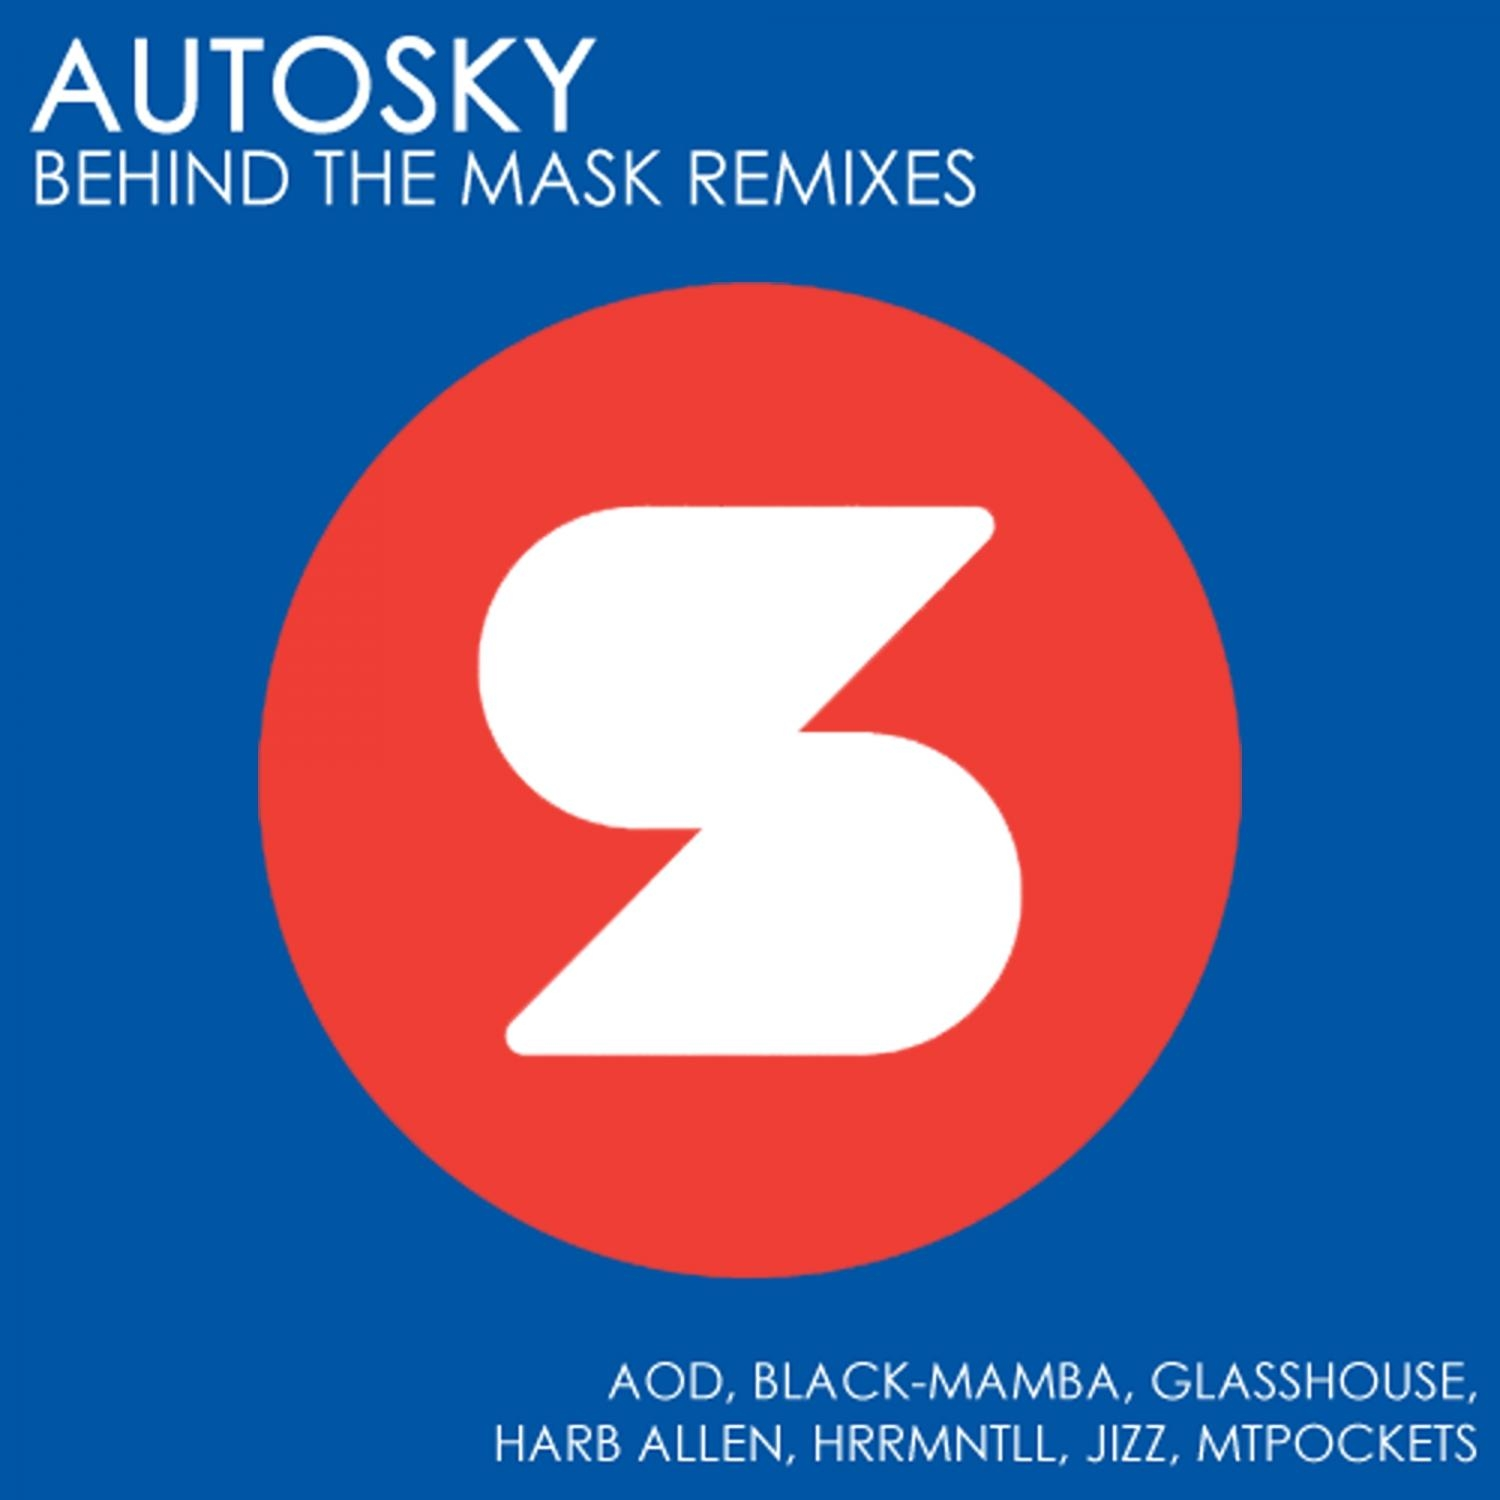 Autosky, Glasshouse - Behind The Mask (Glasshouse Deep Remix)